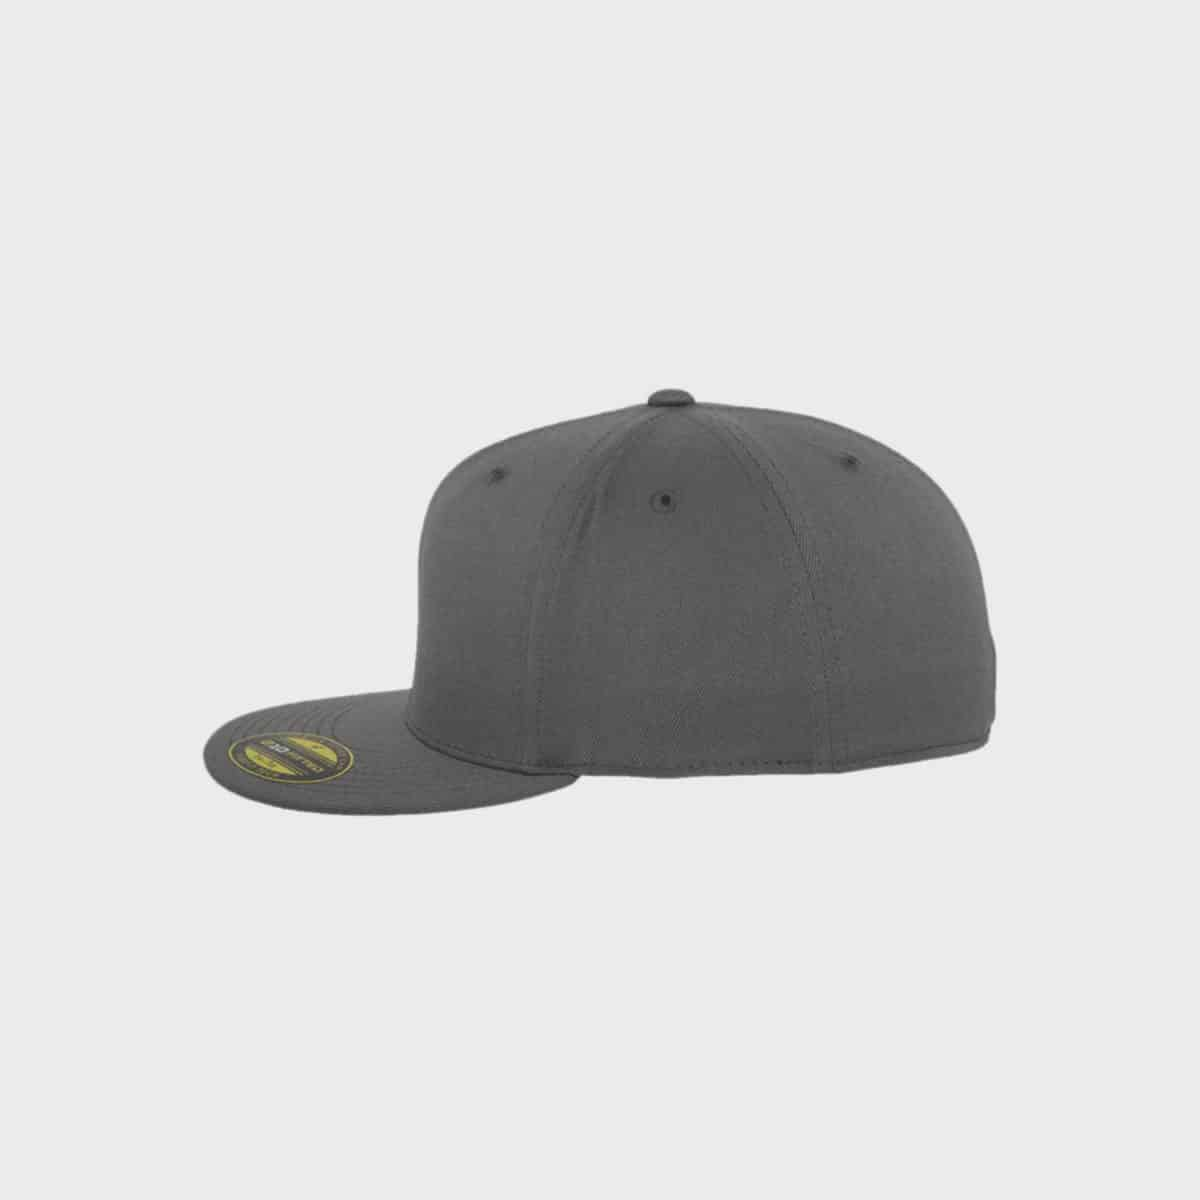 Flexfit FlexfitCaps FFE 6210 Darkgrey Side